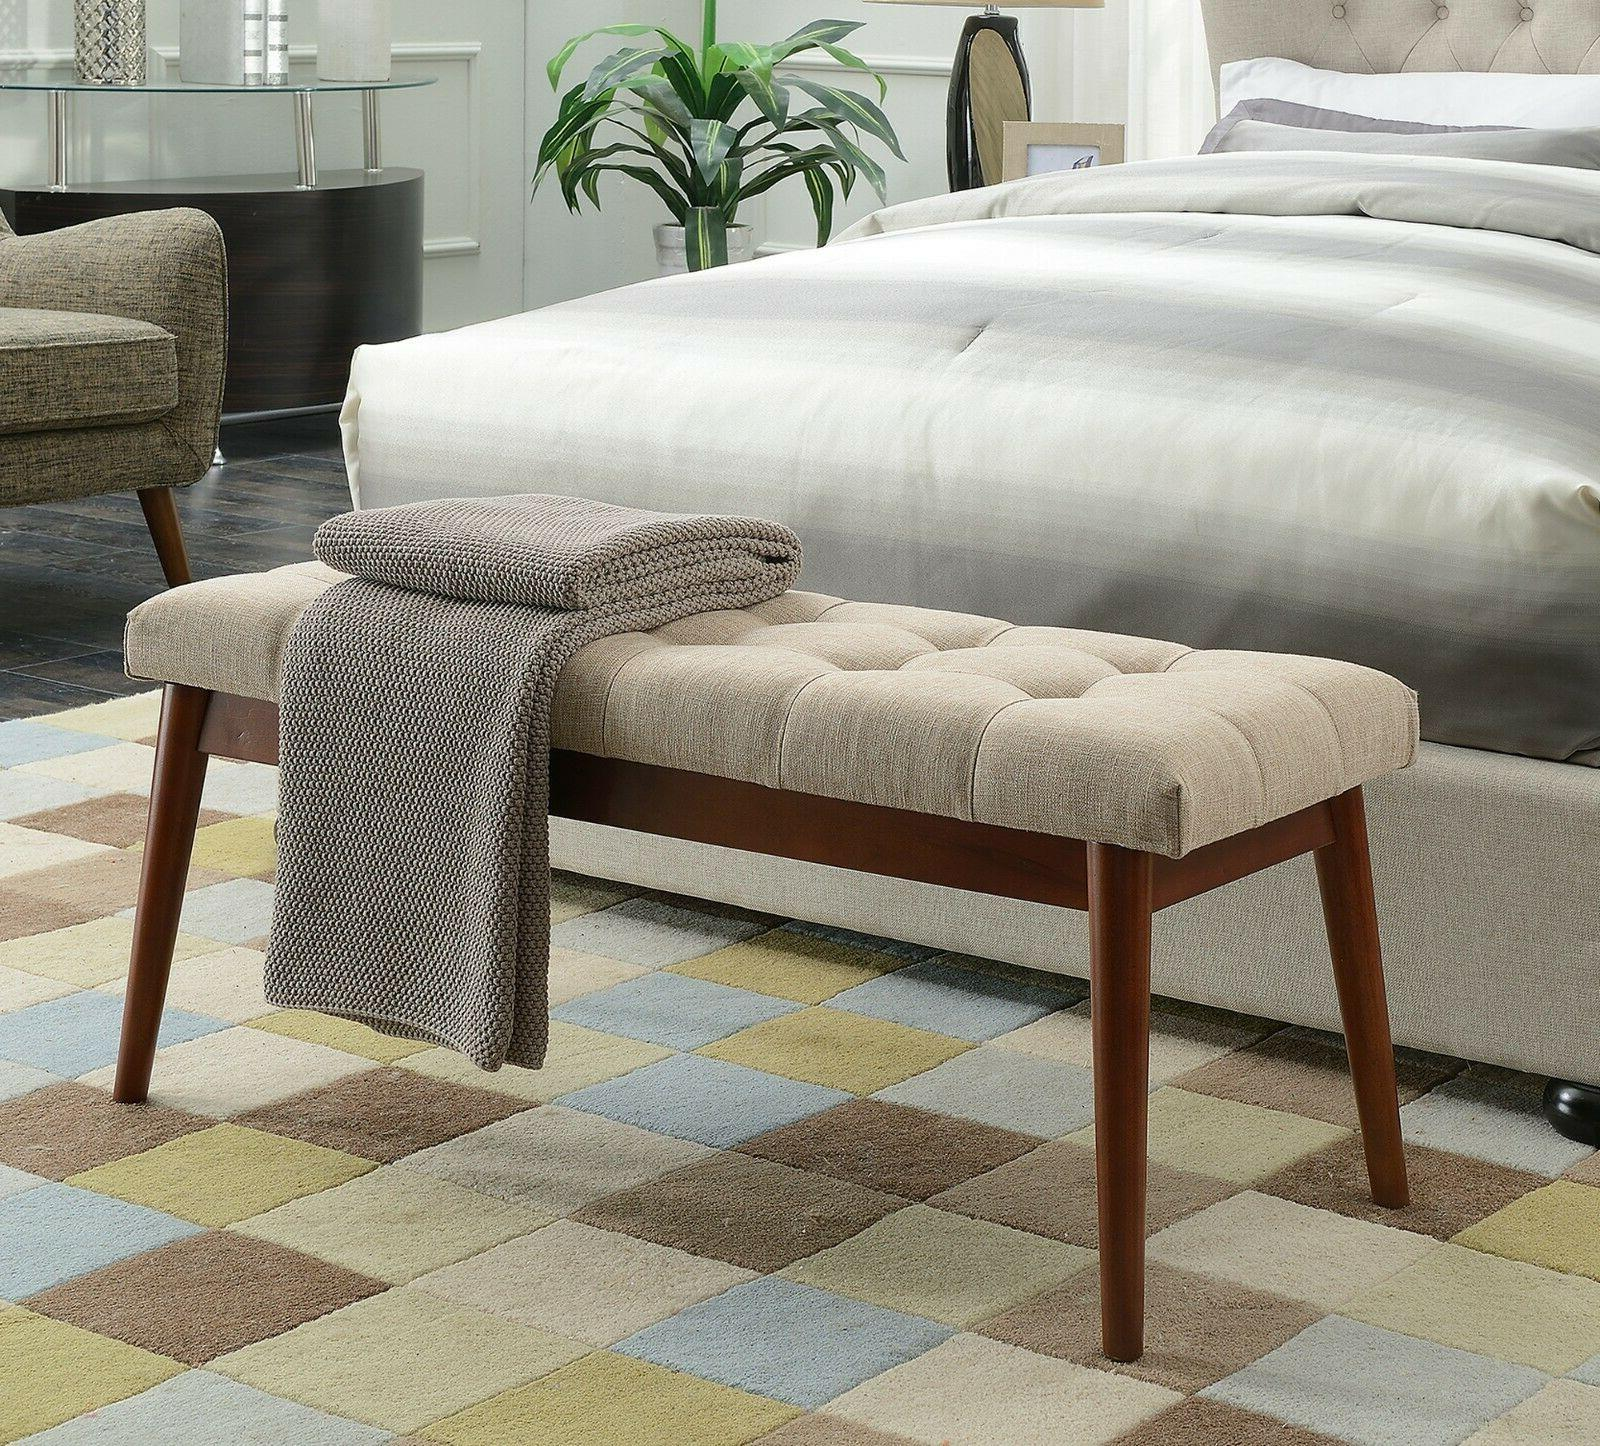 Upholstered Bedroom Bench Tufted Accent Benches For Living R